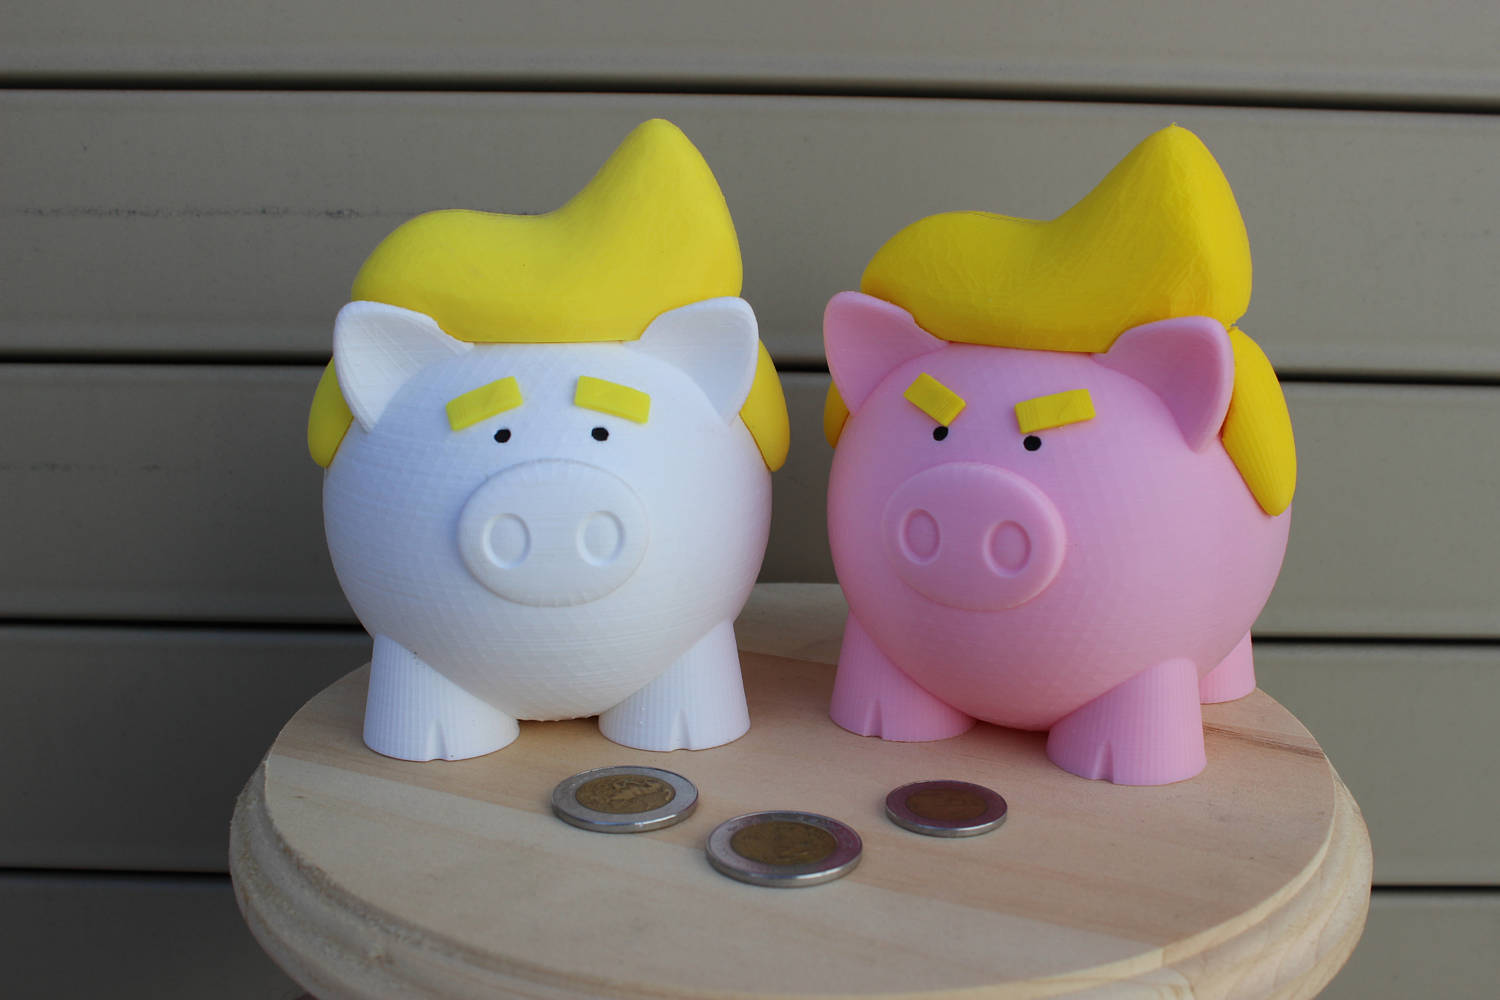 Donald Trump piggy bank